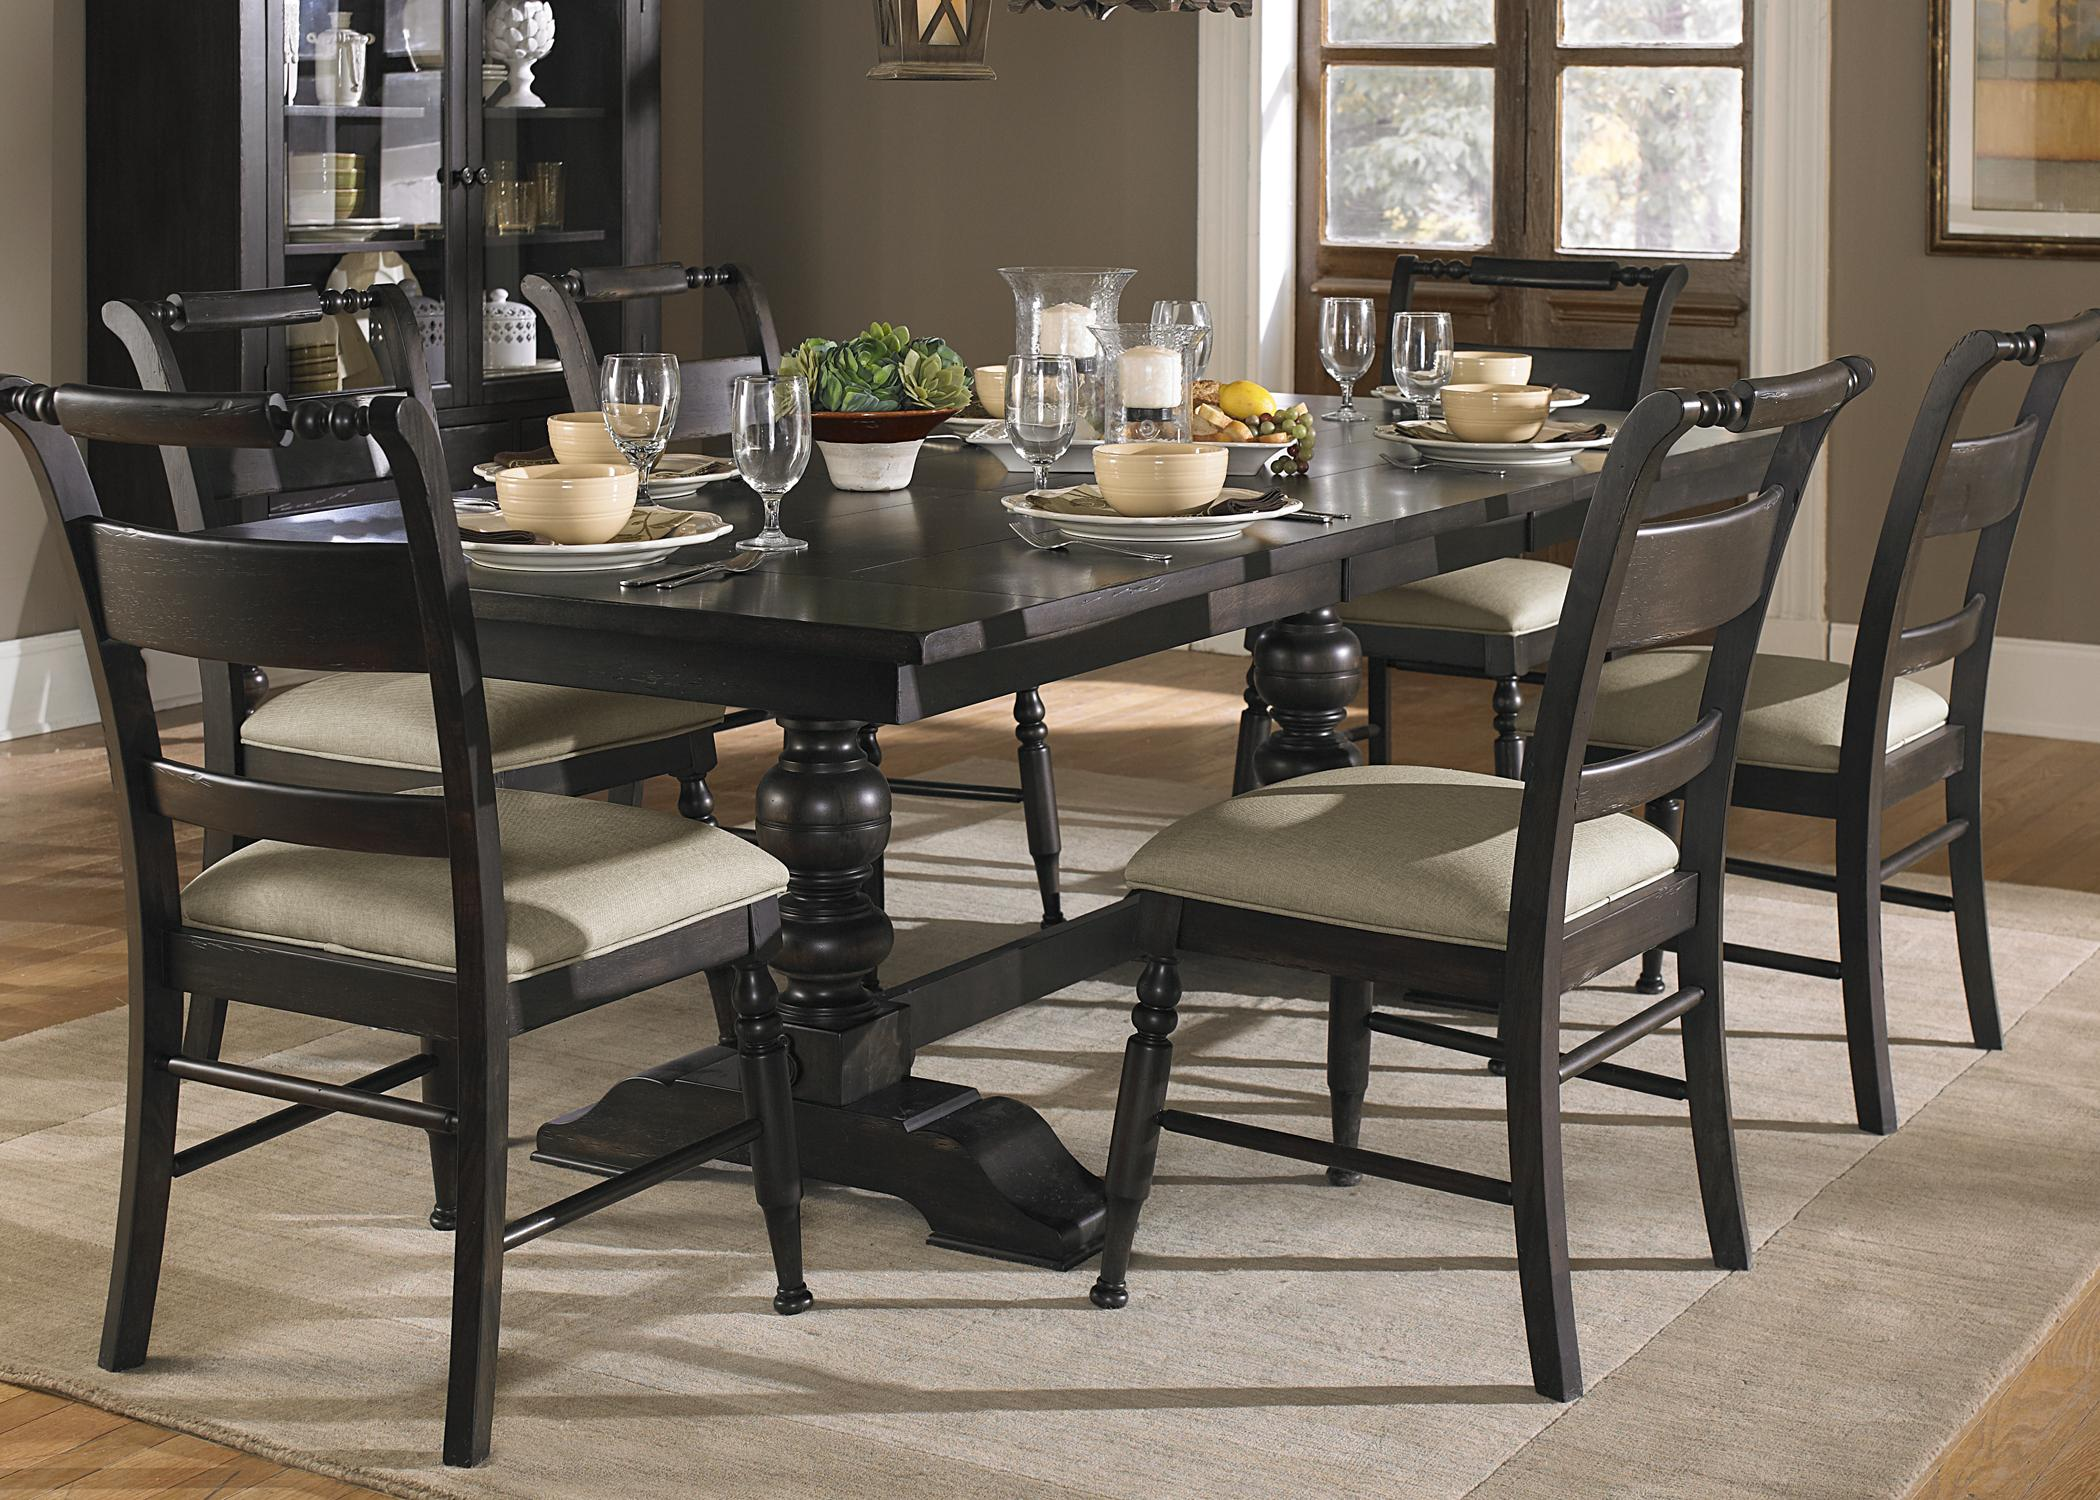 Black Trestle Dining Table